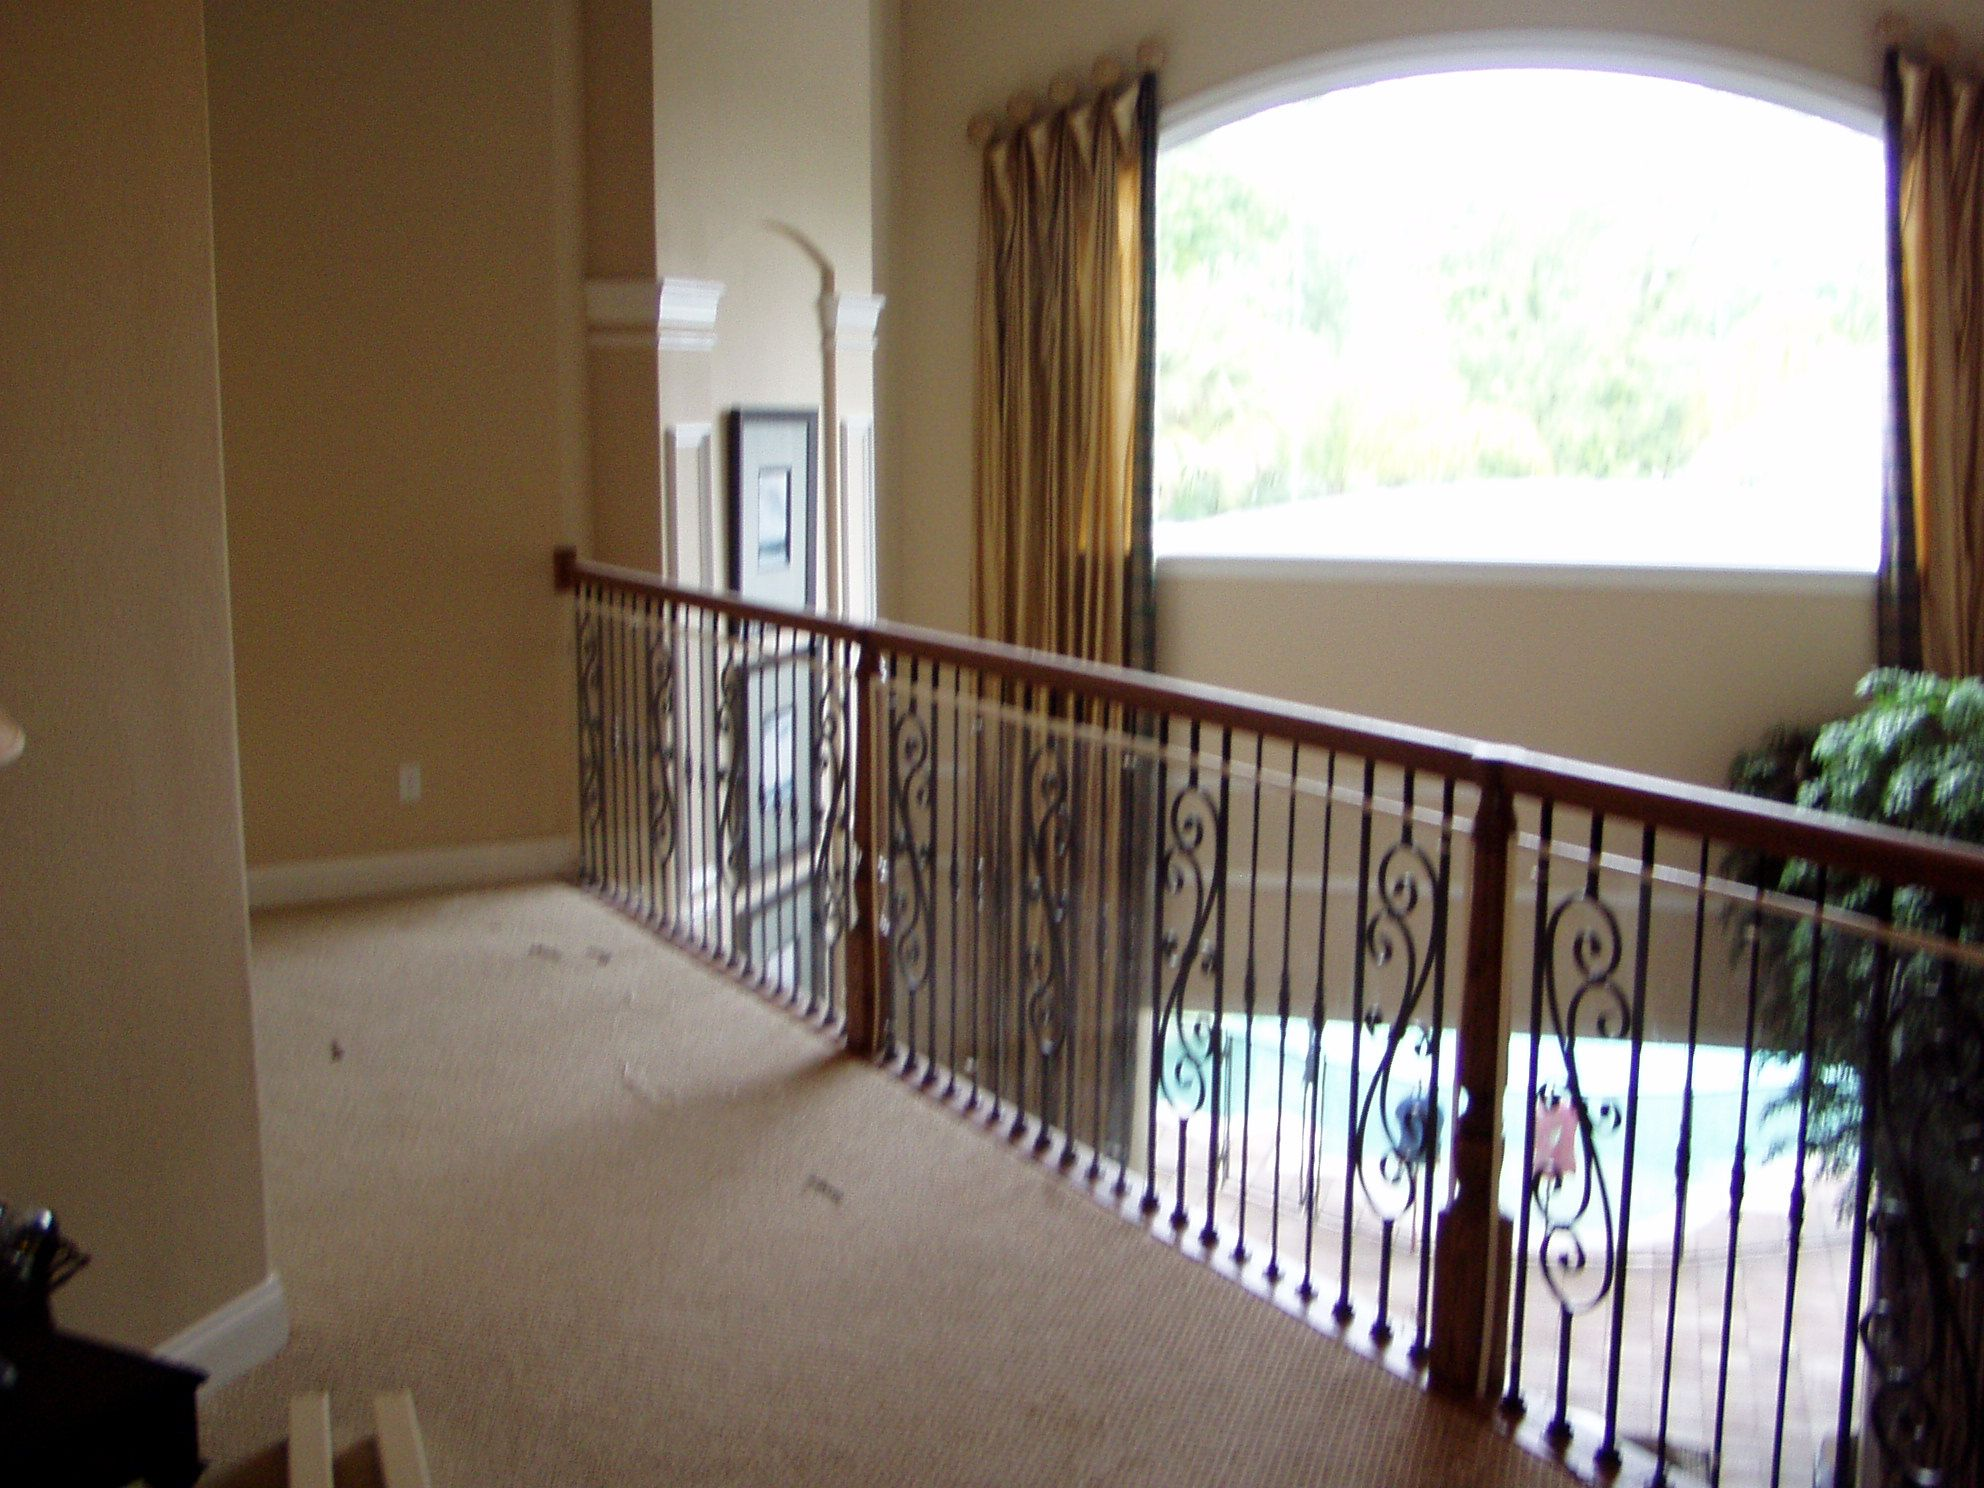 Banister safety before safety wall baby gates french